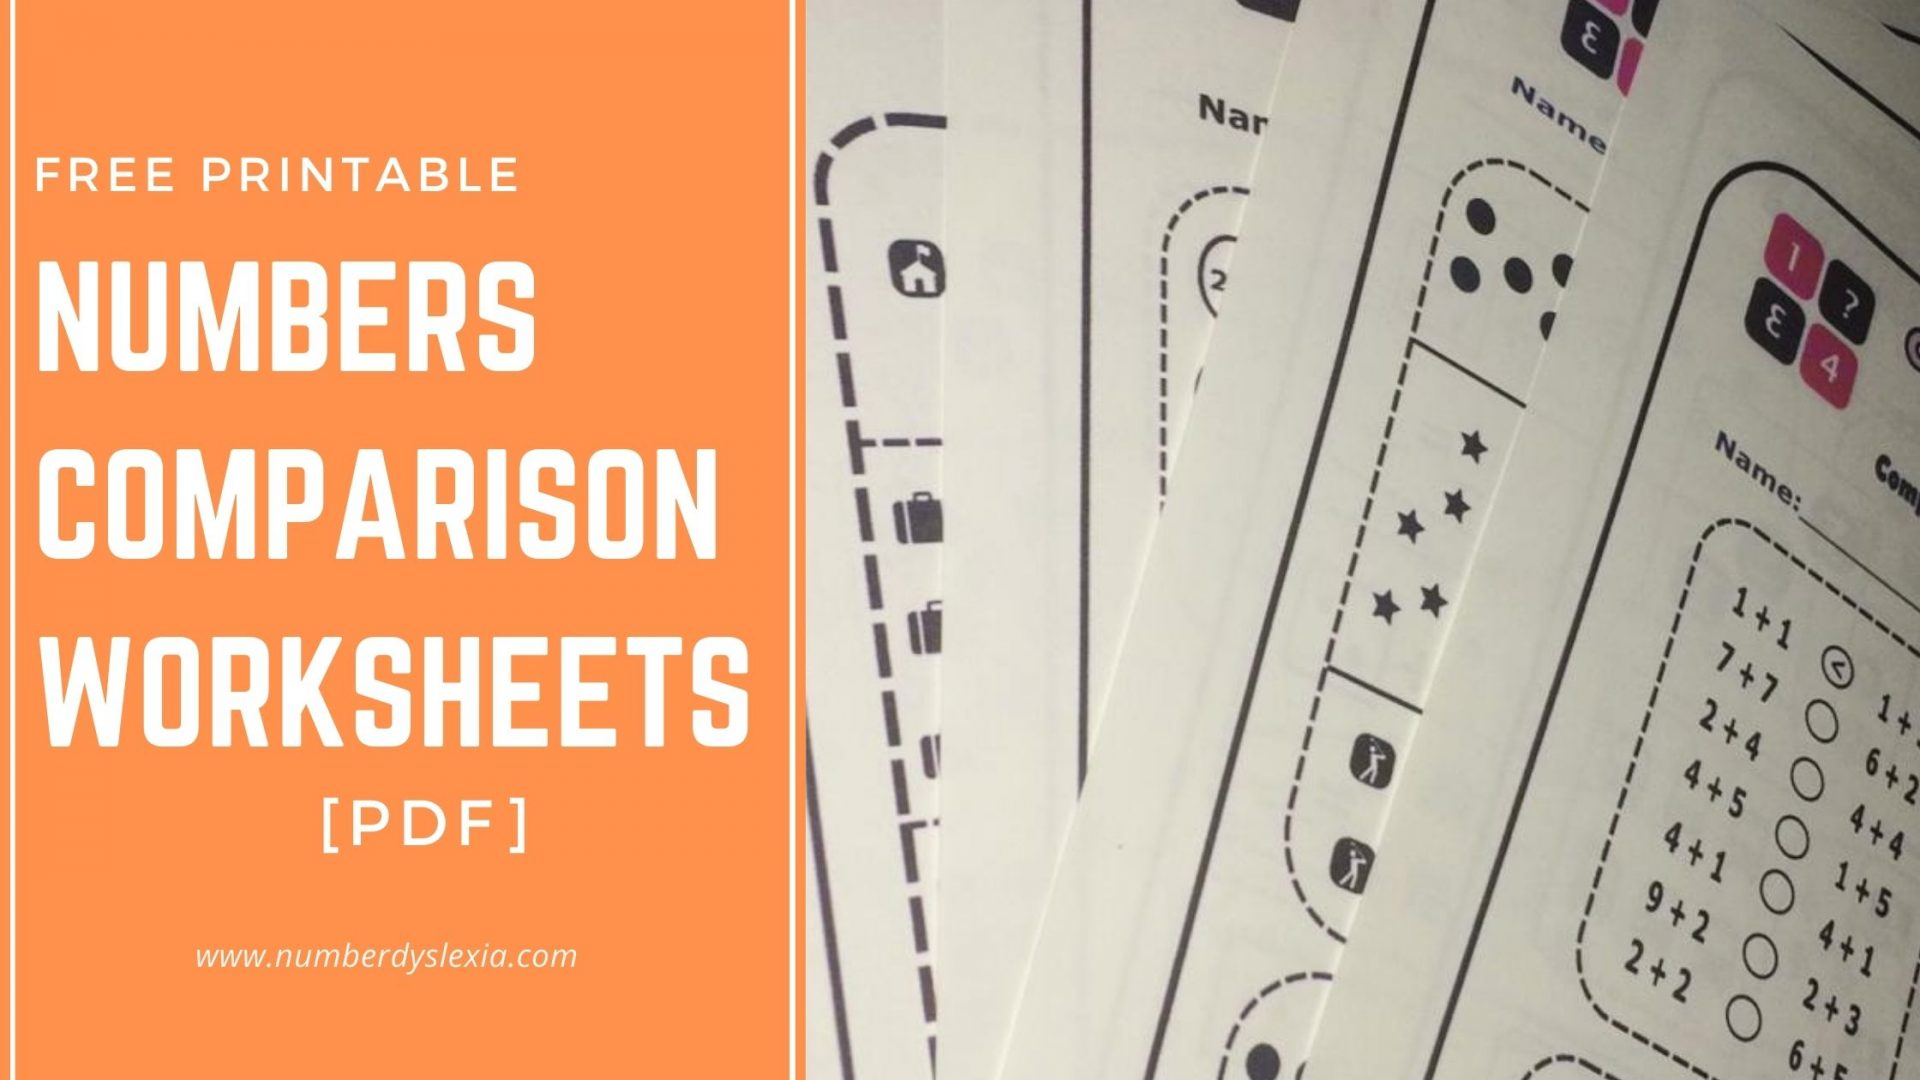 Free Printable Comparing numbers worksheets for kindergarten [PDF]